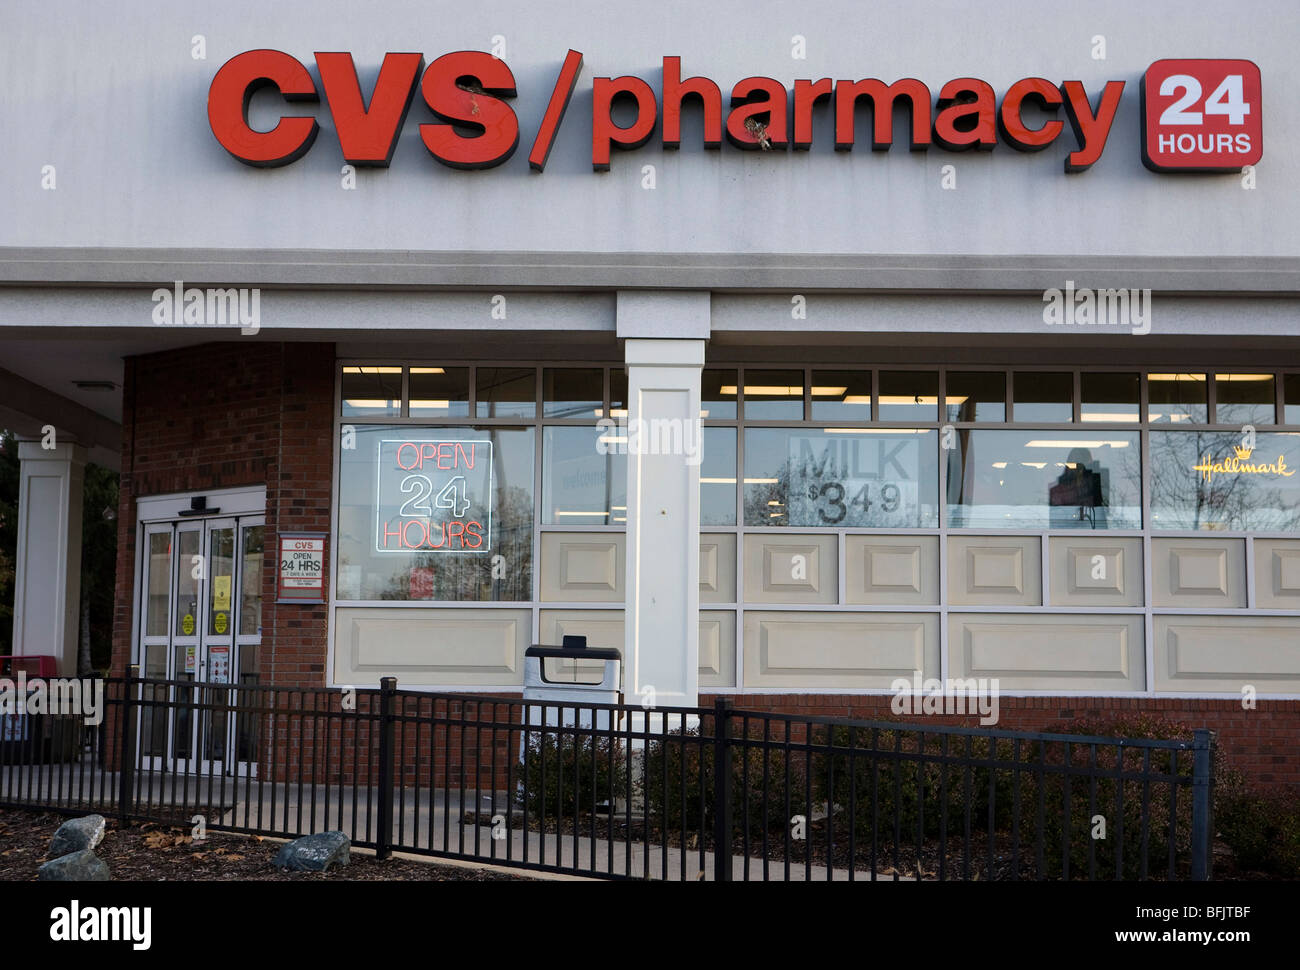 cvs pharmacy storefront sign stock photos  u0026 cvs pharmacy storefront sign stock images